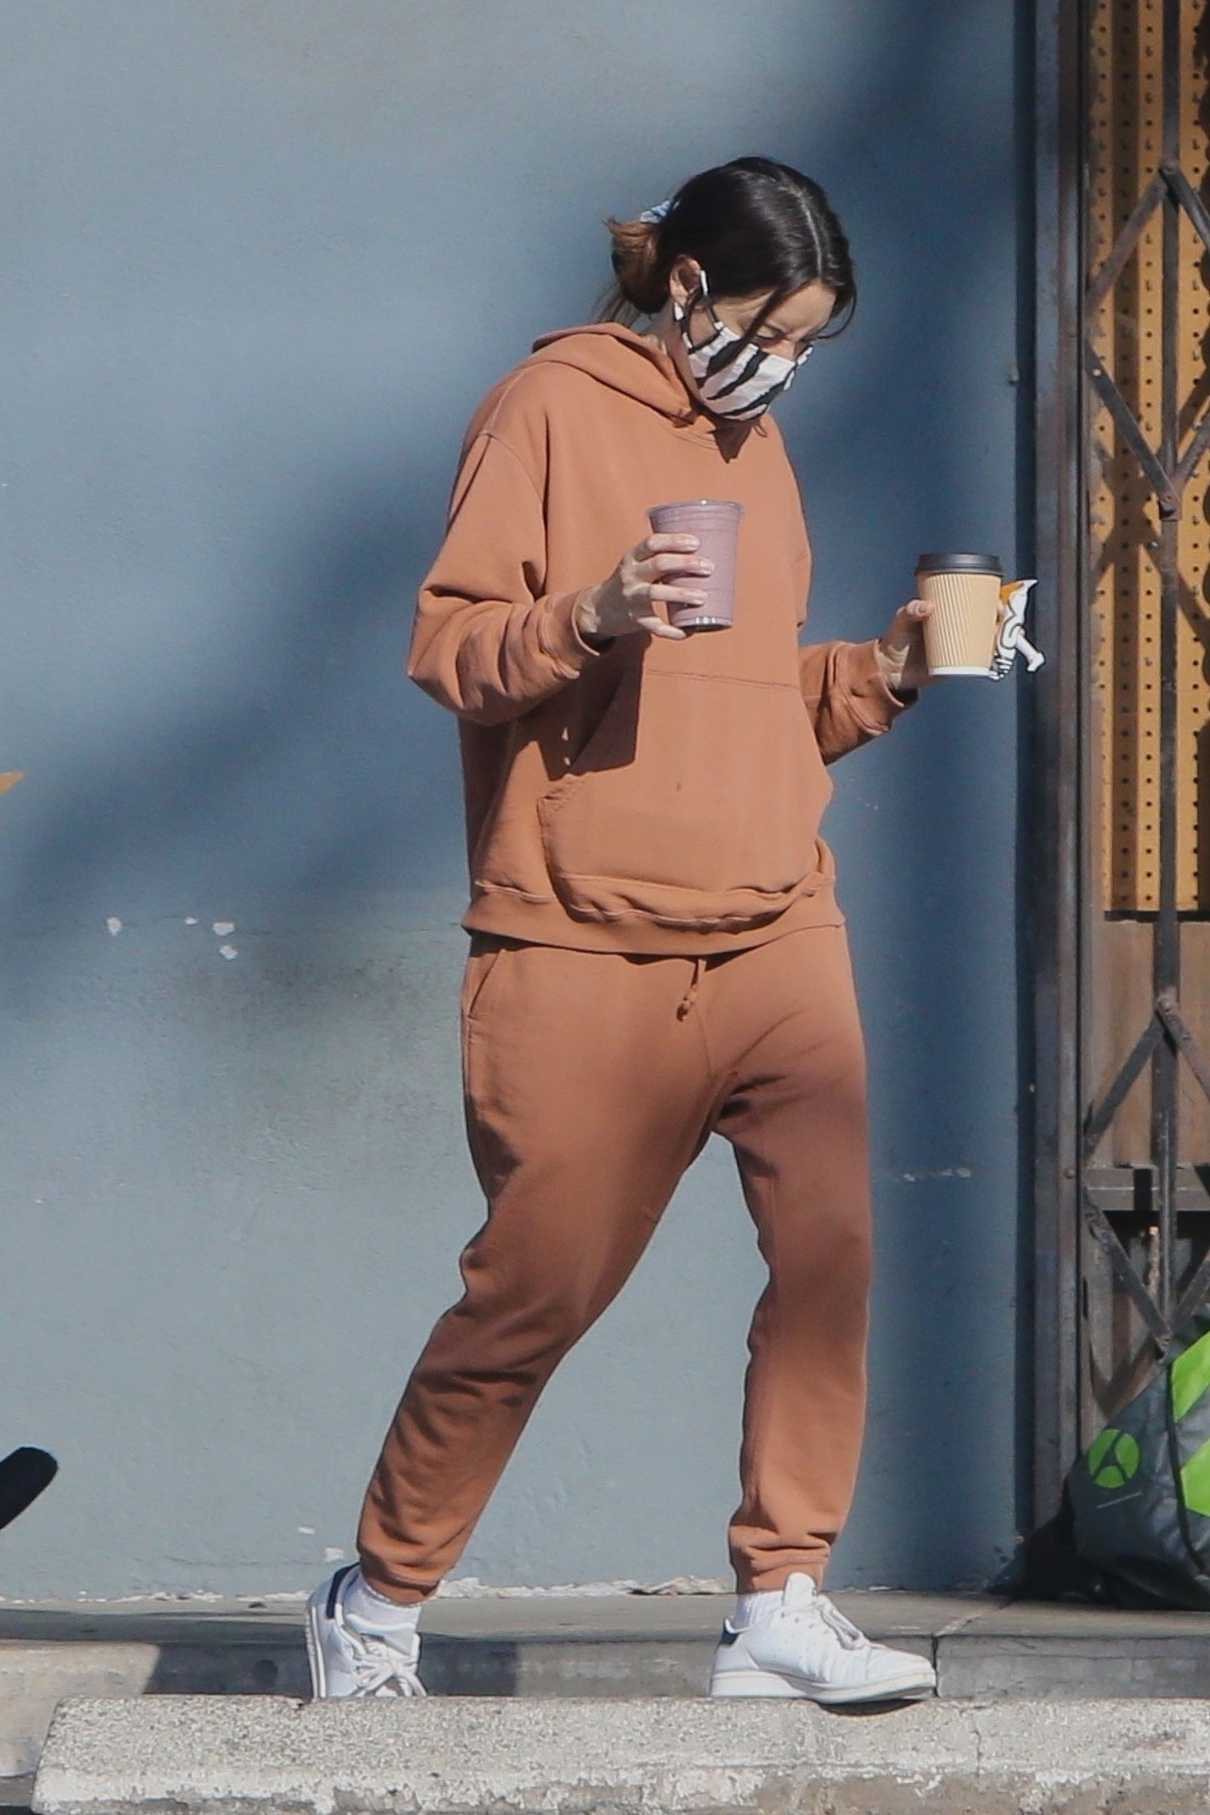 Aubrey Plaza in a Tan Sweatsuit